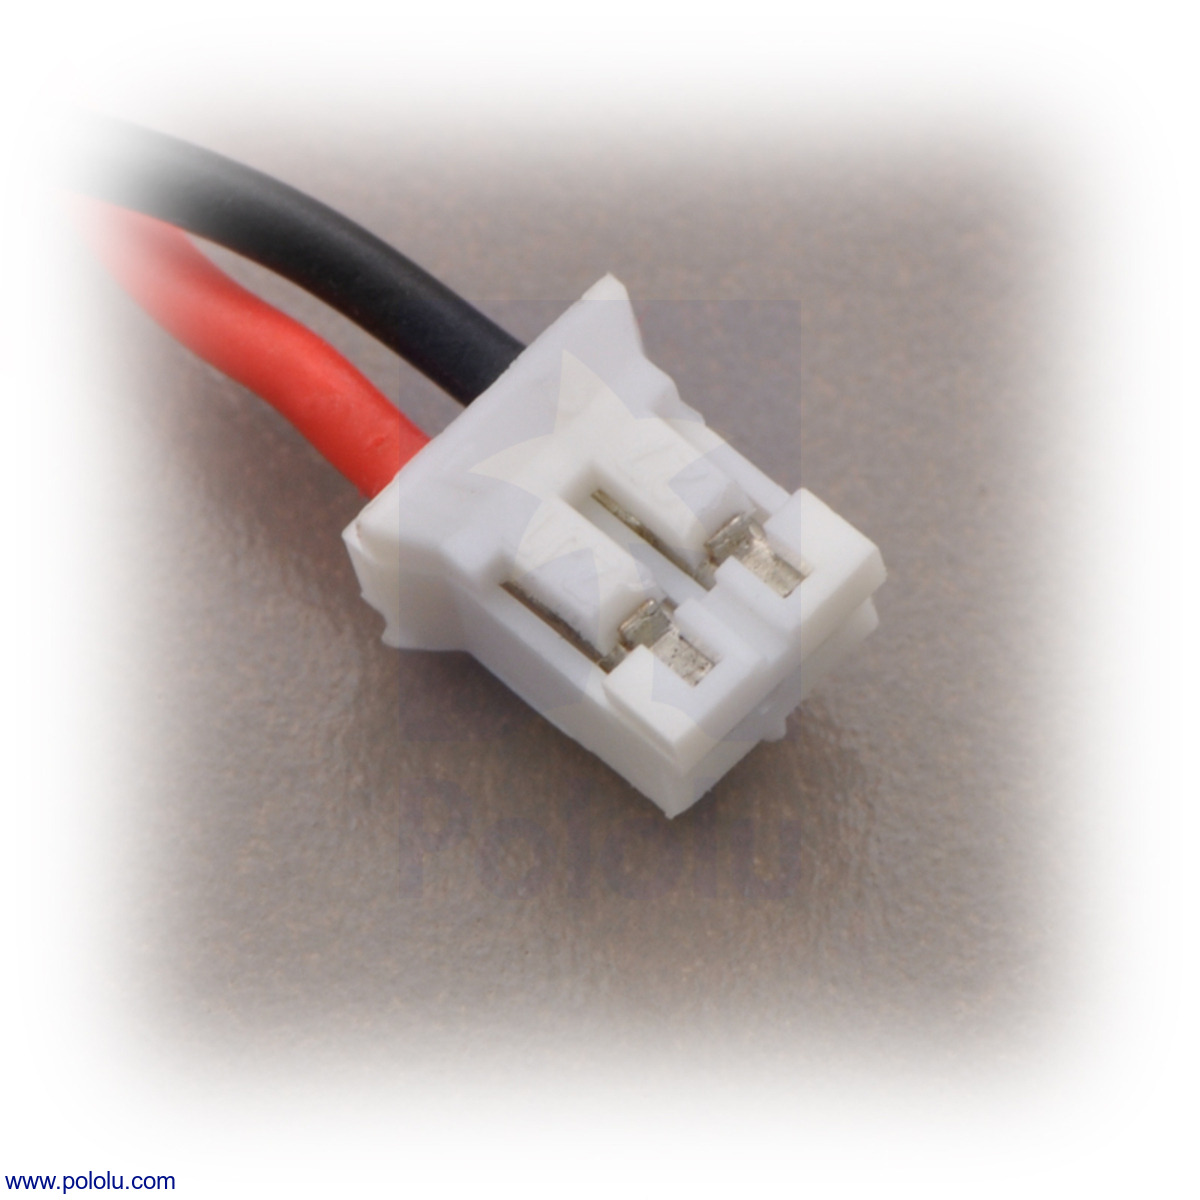 Pololu - 2-Pin Female JST PH-Style Cable (14cm)